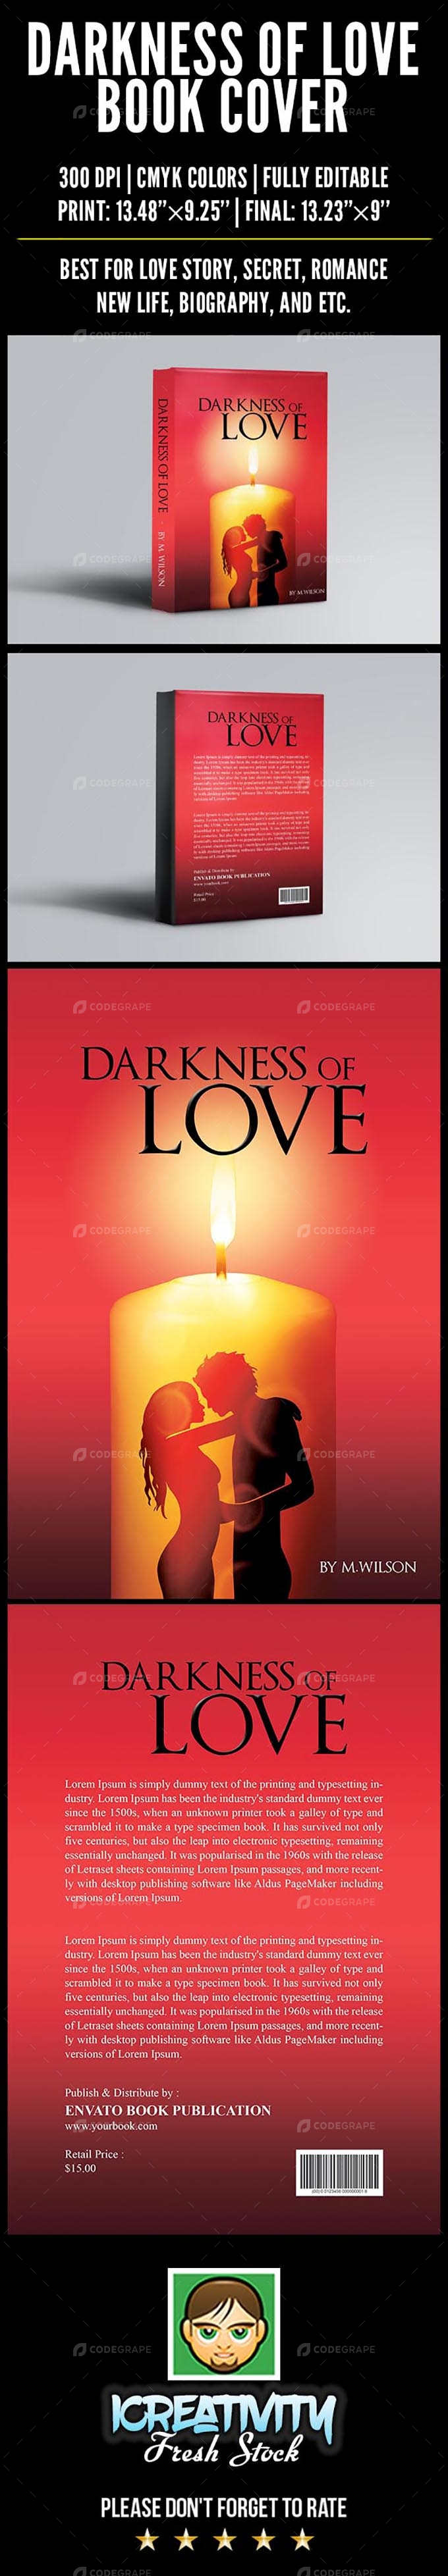 Darkness of Love Book Cover